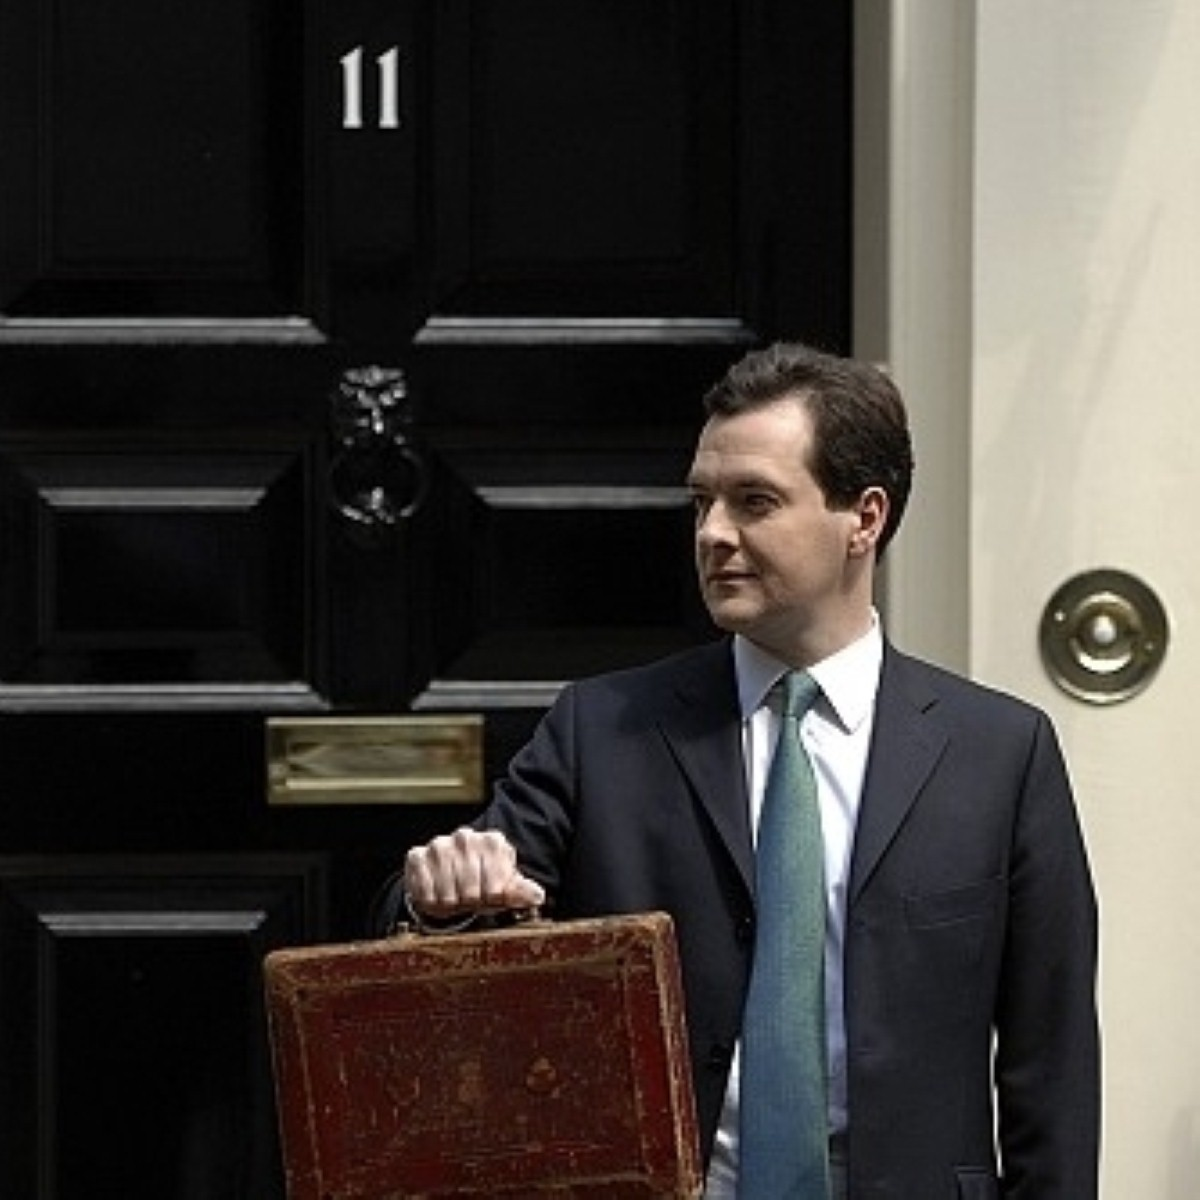 Relief for George Osborne ahead of next month's budget